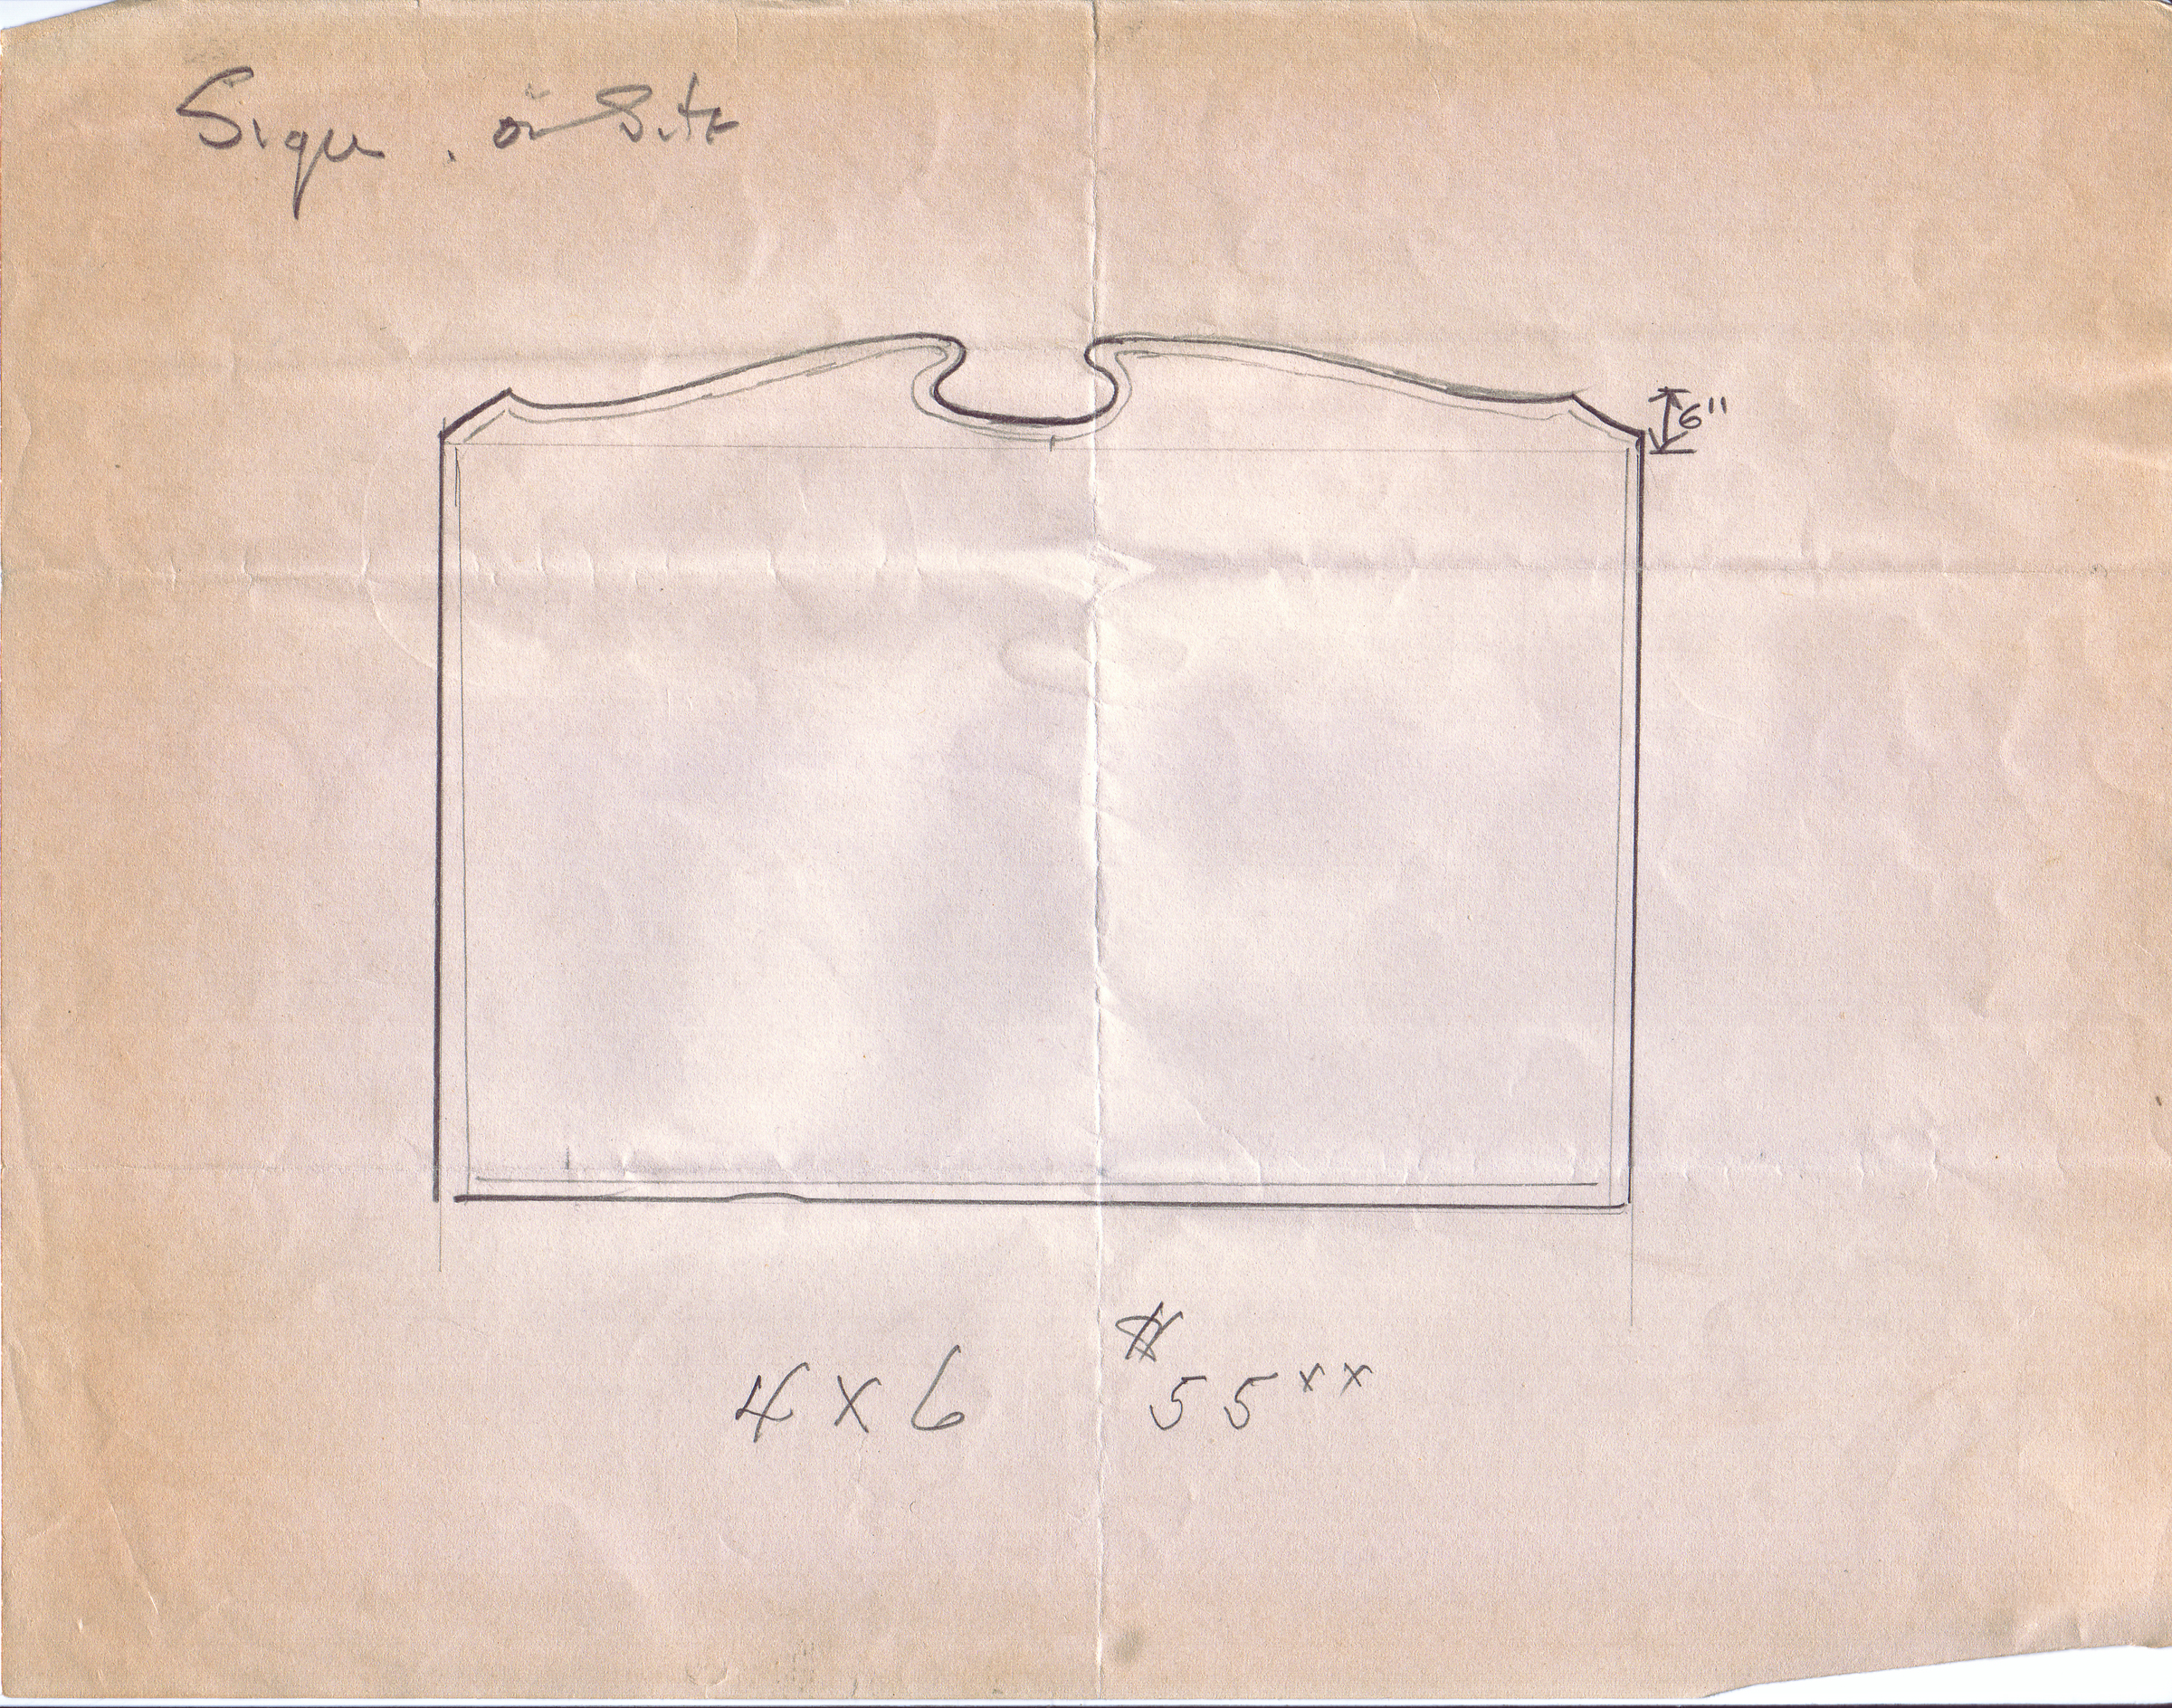 Sign on site [hand drawn sketch of sign to mark the construction of George Mason College at Fairfax, no date].